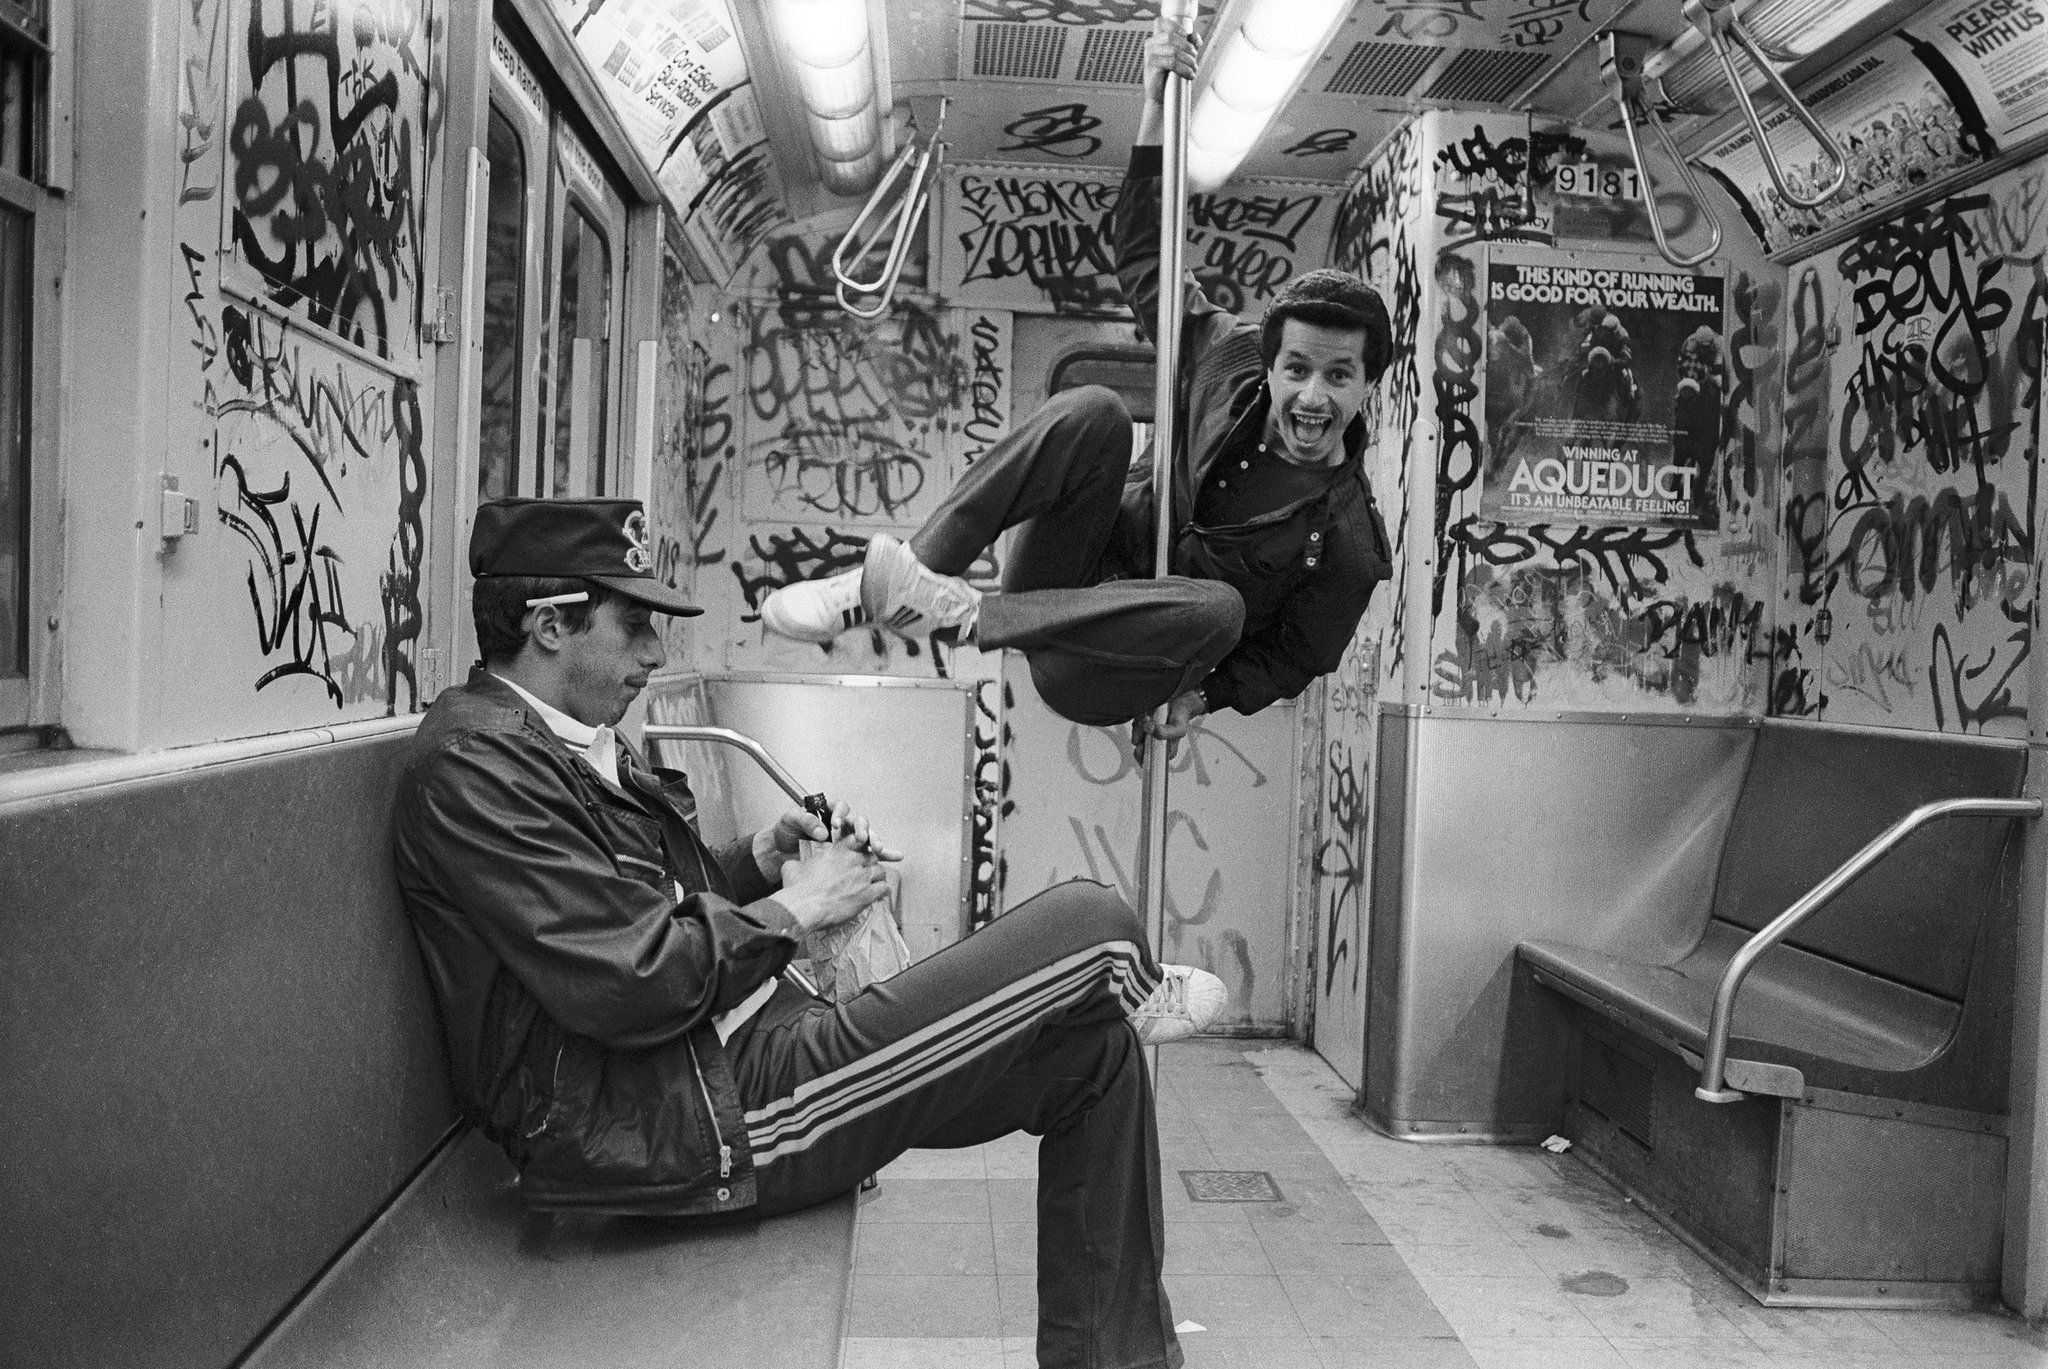 Explore Nyc Subway, Documentary Photography, and more!